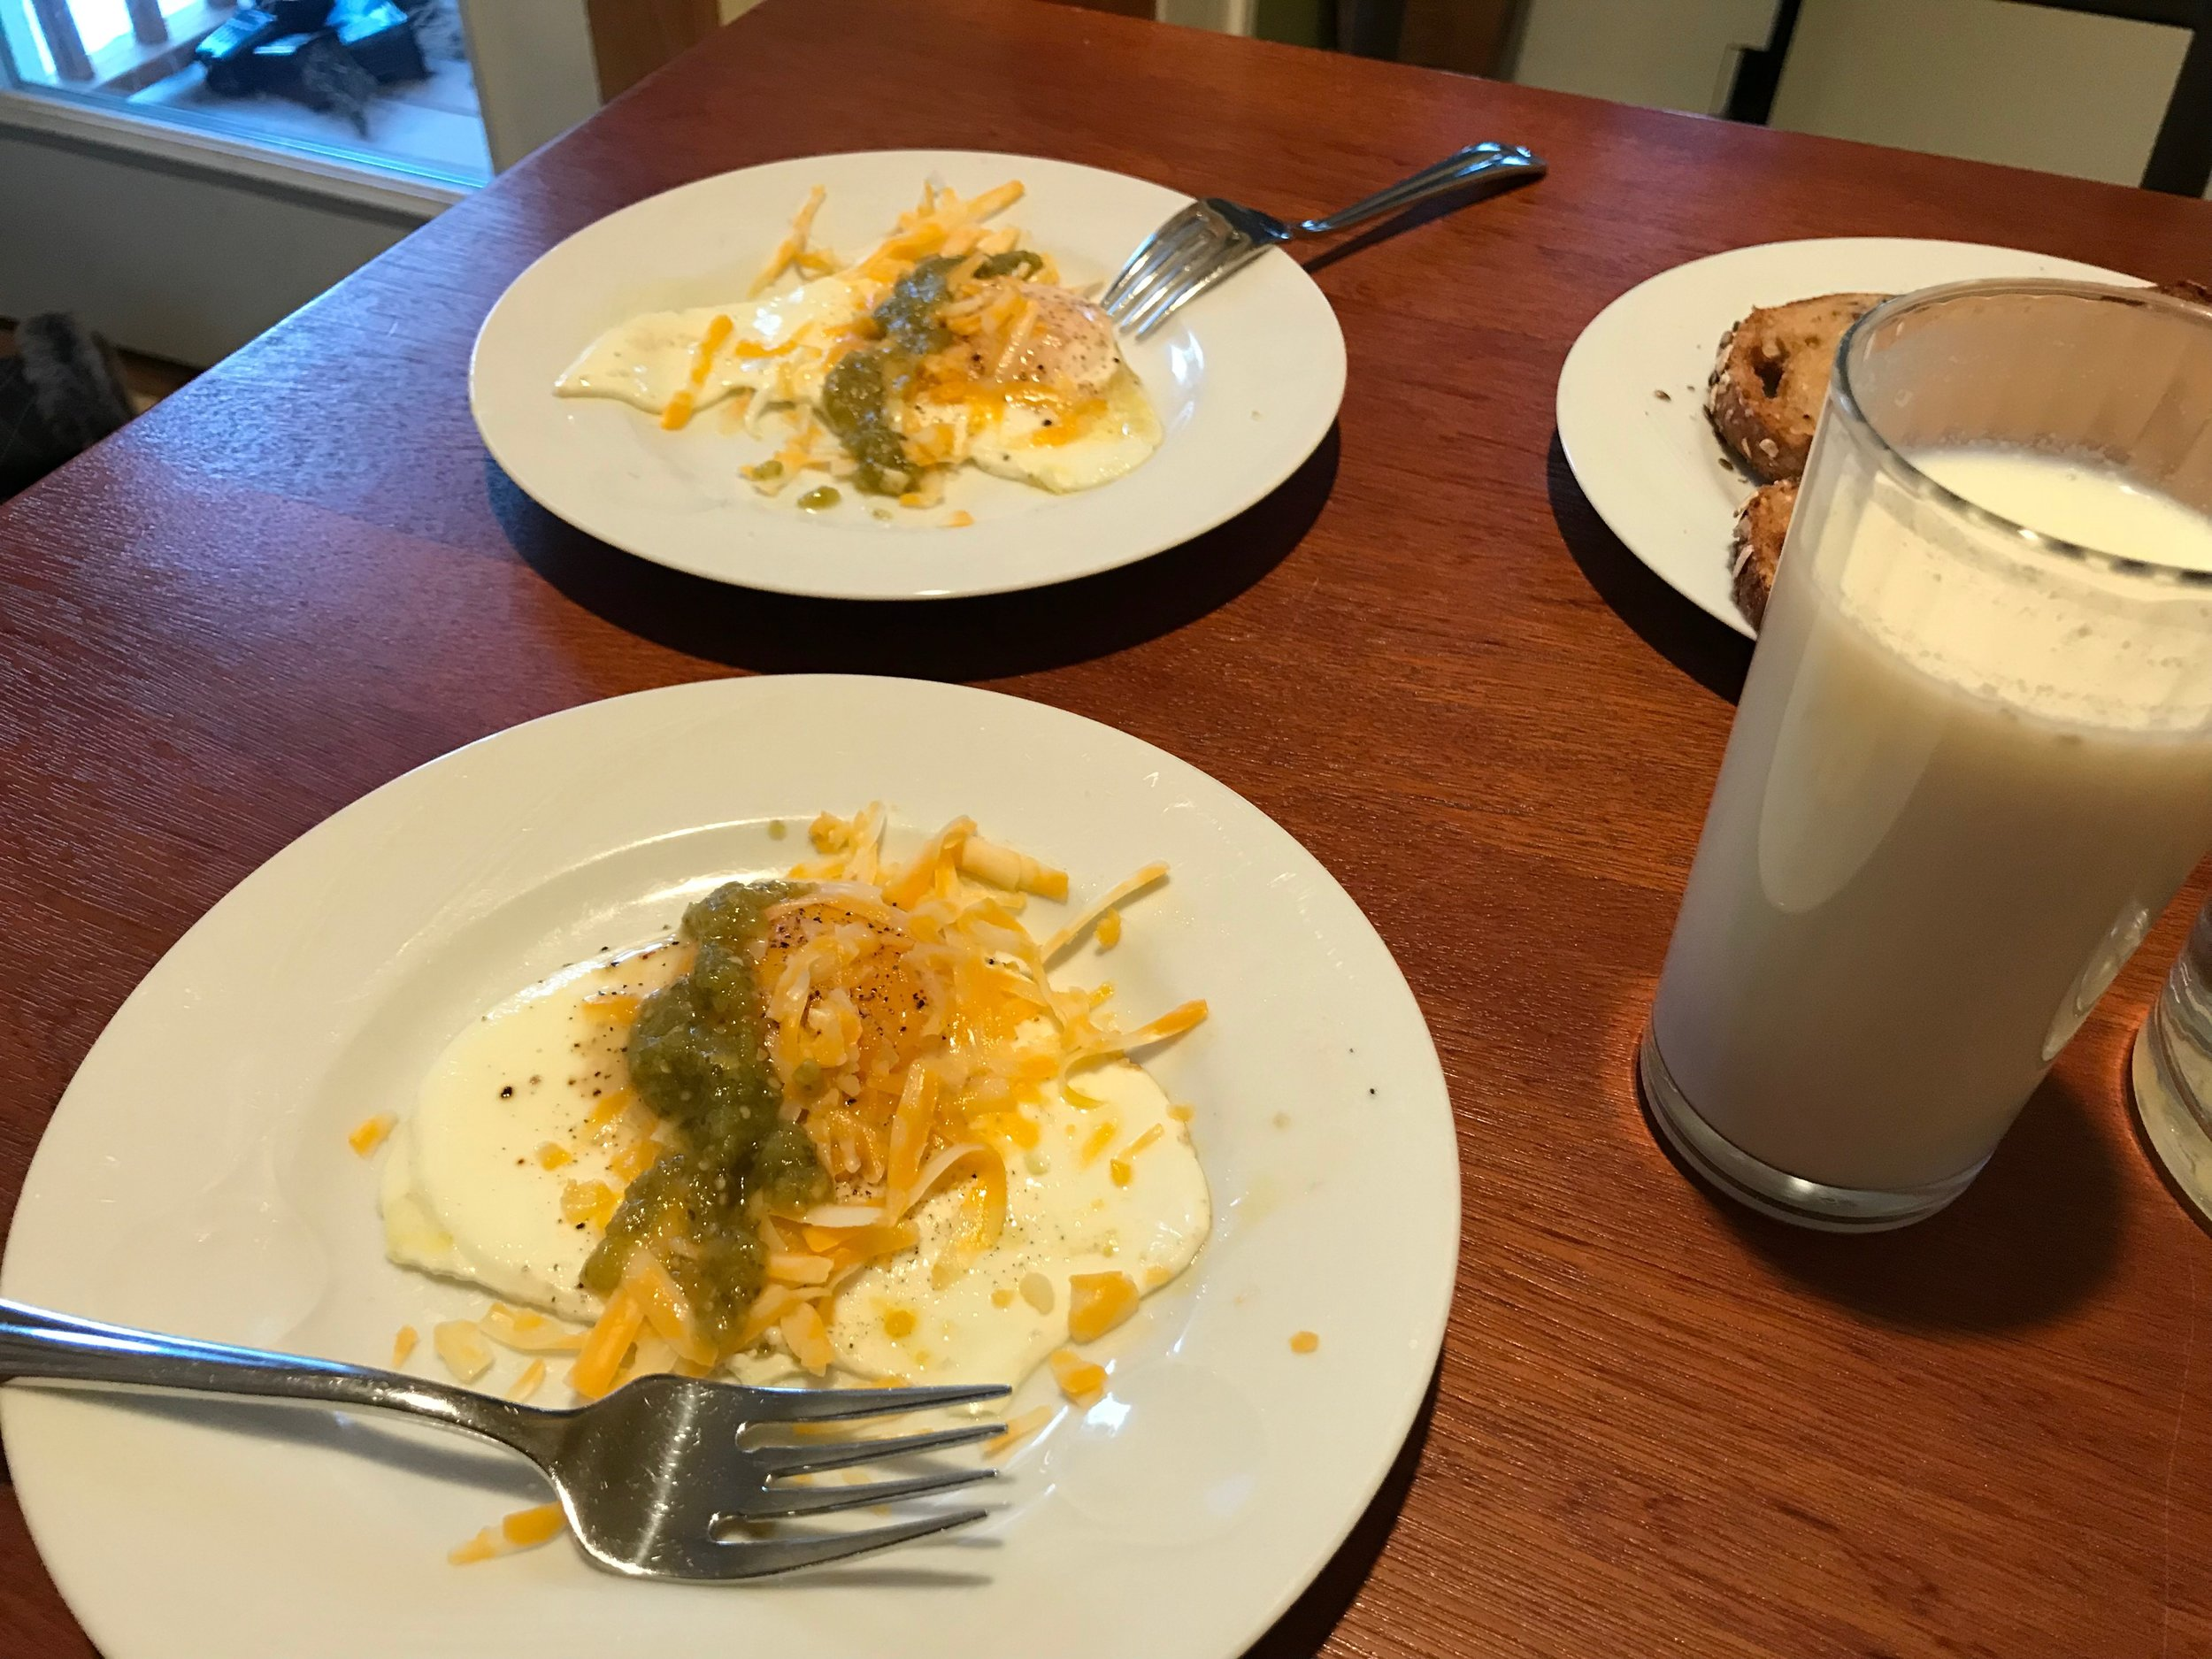 A quick pic of our breakfast: fried eggs topped with shredded colby/jack cheese and salsa. Super yummy.